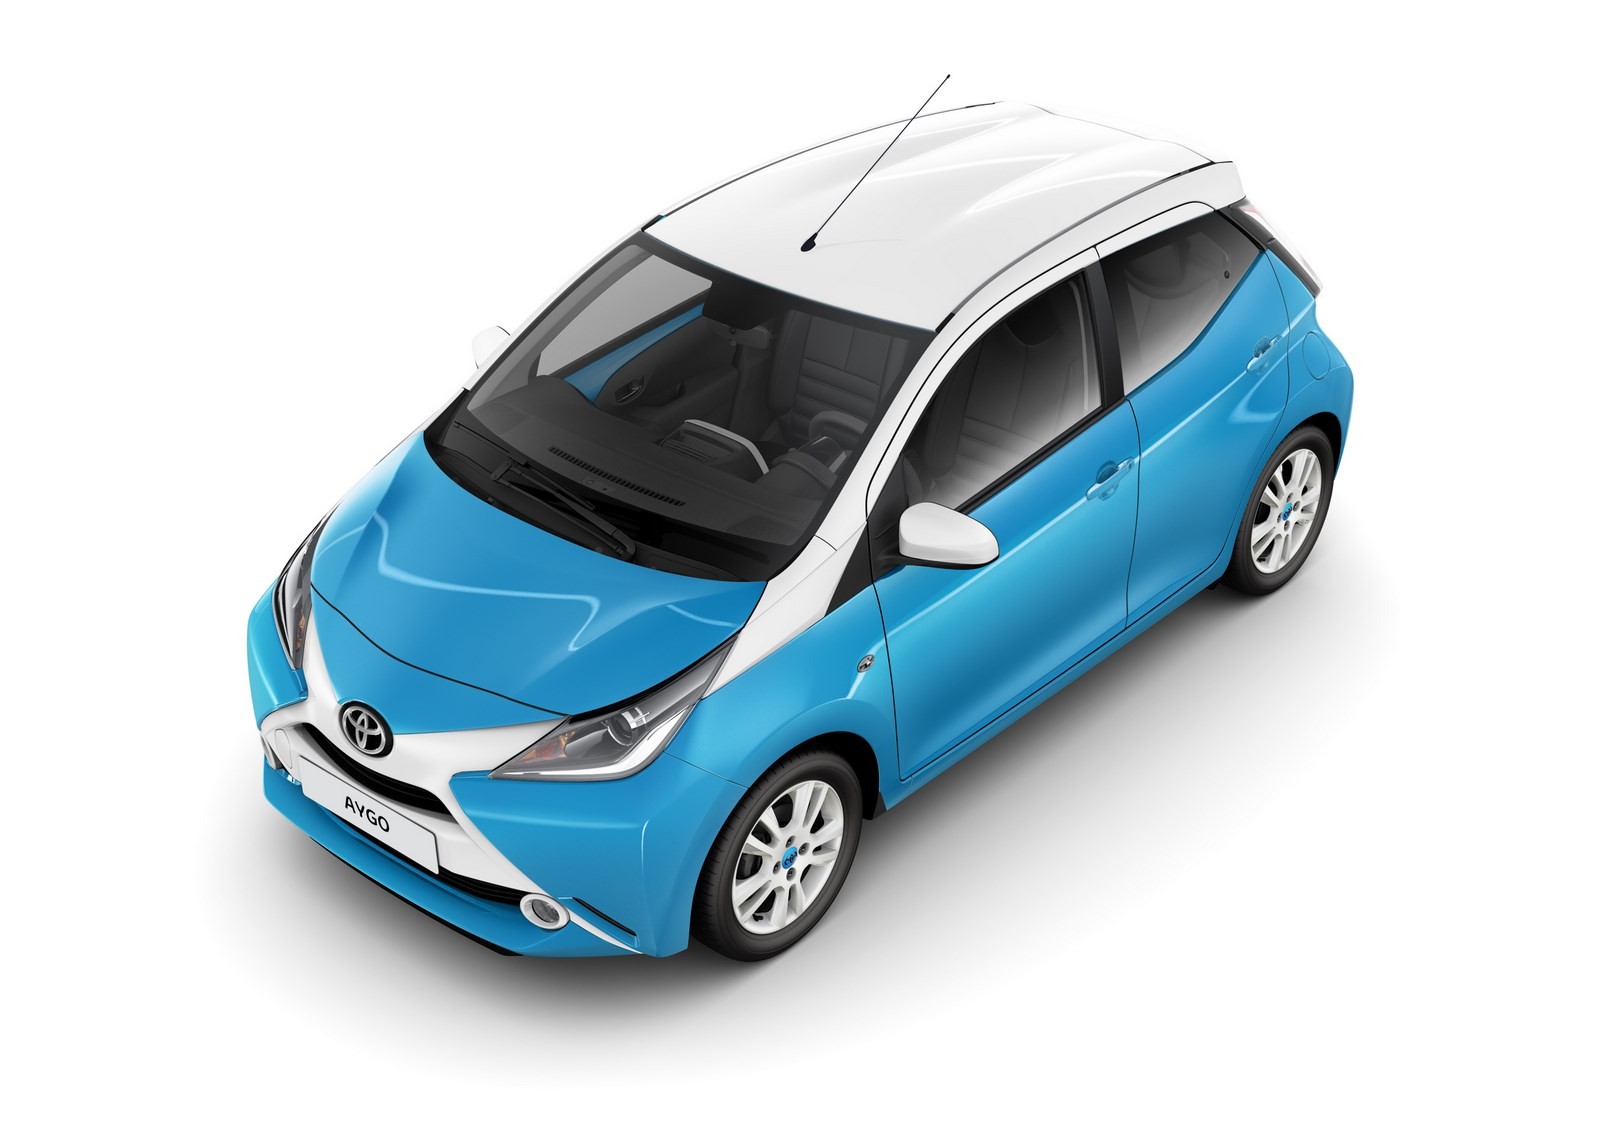 2019 Toyota Aygo for Sport Concept photo - 3